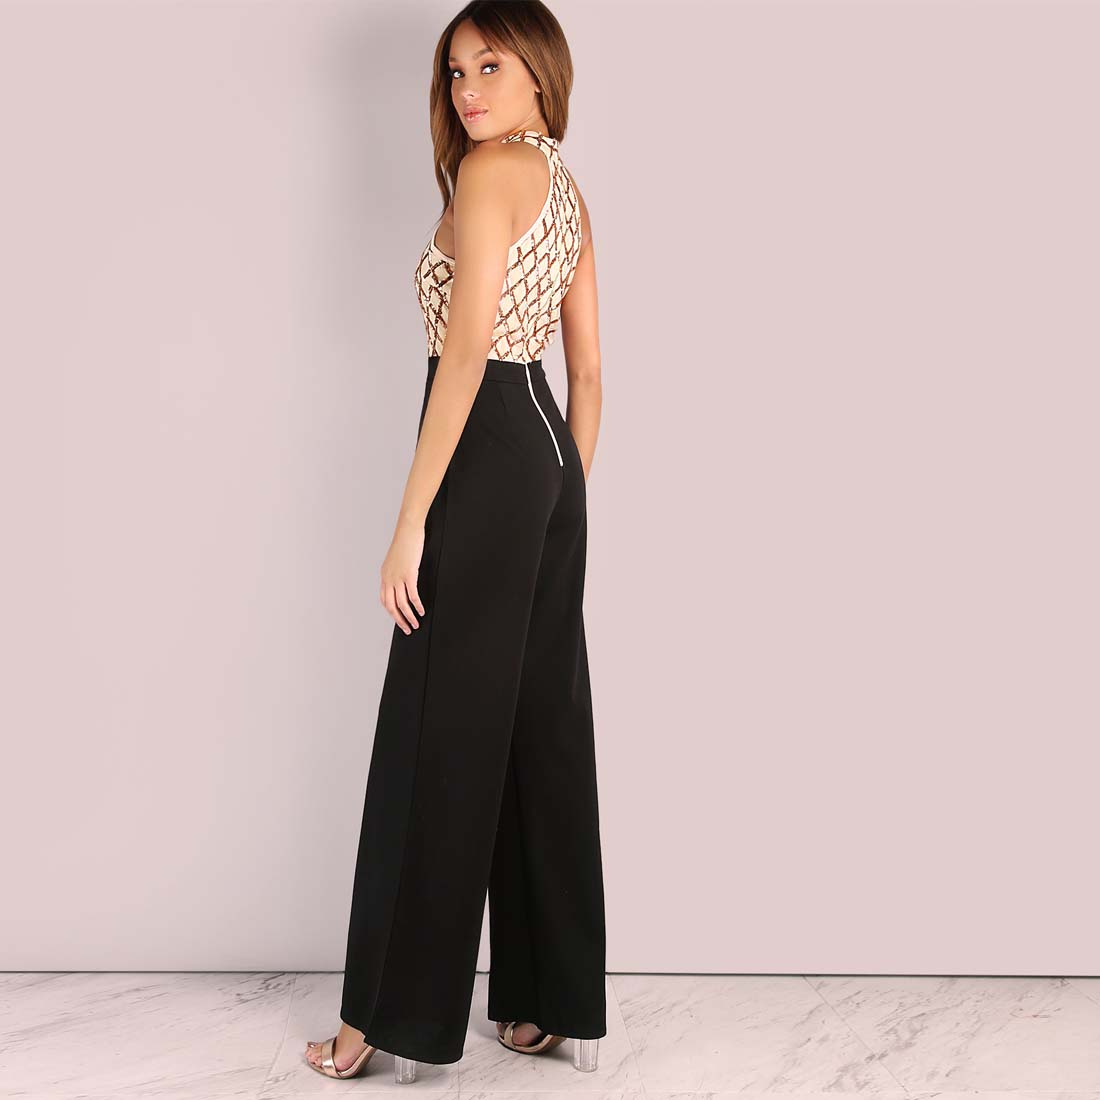 3b71f036c06 YJSFG HOUSE Women Sequin Patchwork Evening Party Jumpsuit Romper Sexy  Halter Sleeveless One Piece Bodysuit Summer Slim Overalls-in Jumpsuits from  Women s ...